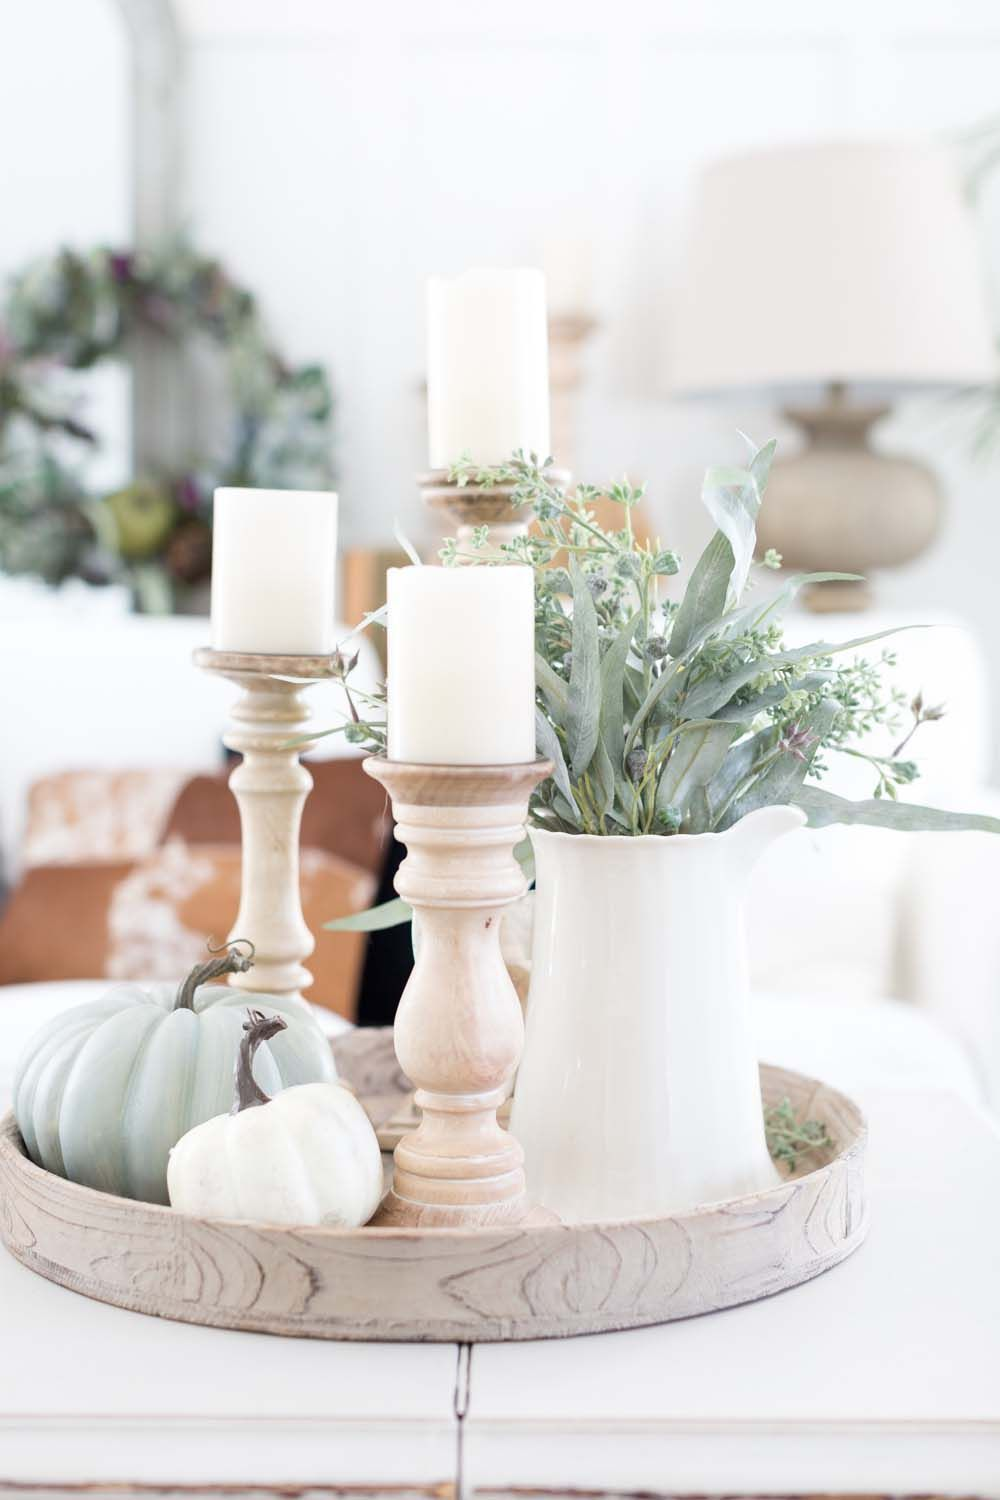 36 Incredibly inspiring fall decor ideas to transform your home #falldecorideas